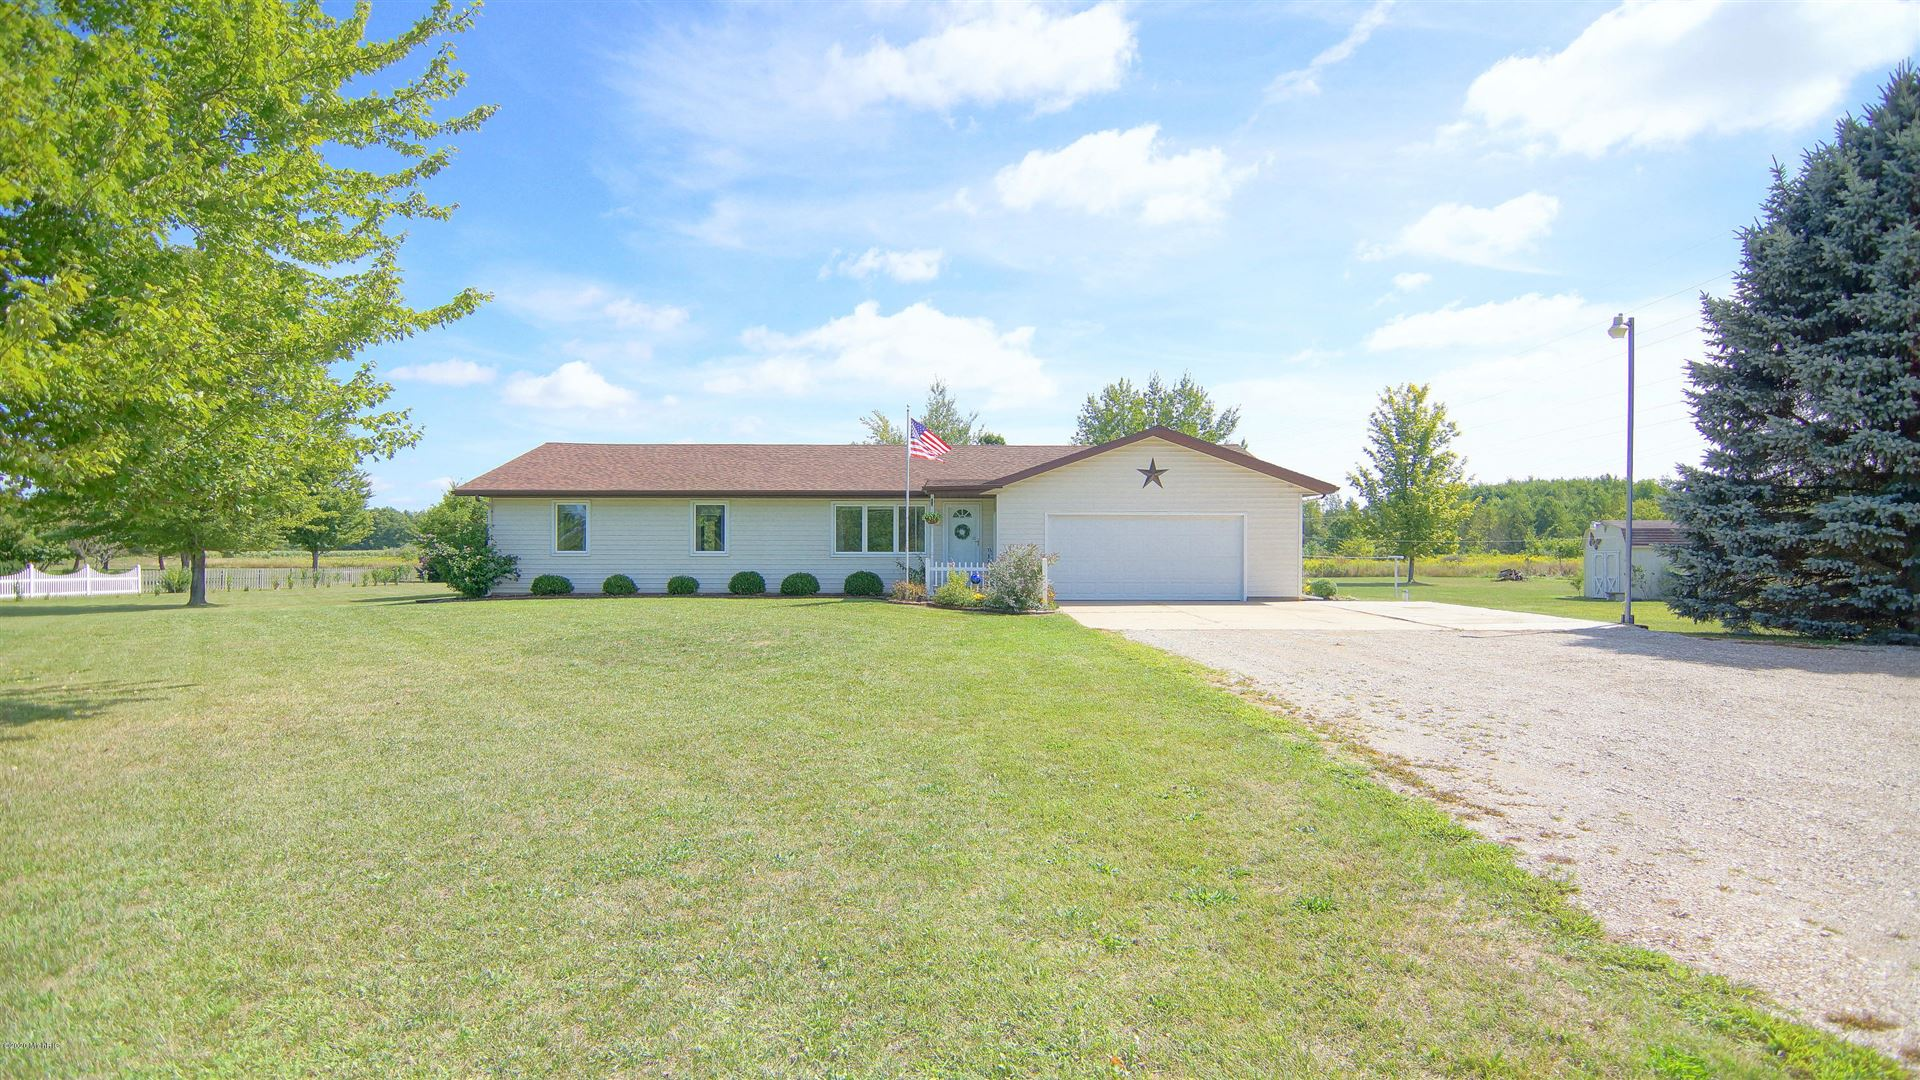 4969 Bundy Road, Coloma, MI 49038 - MLS#: 20036736